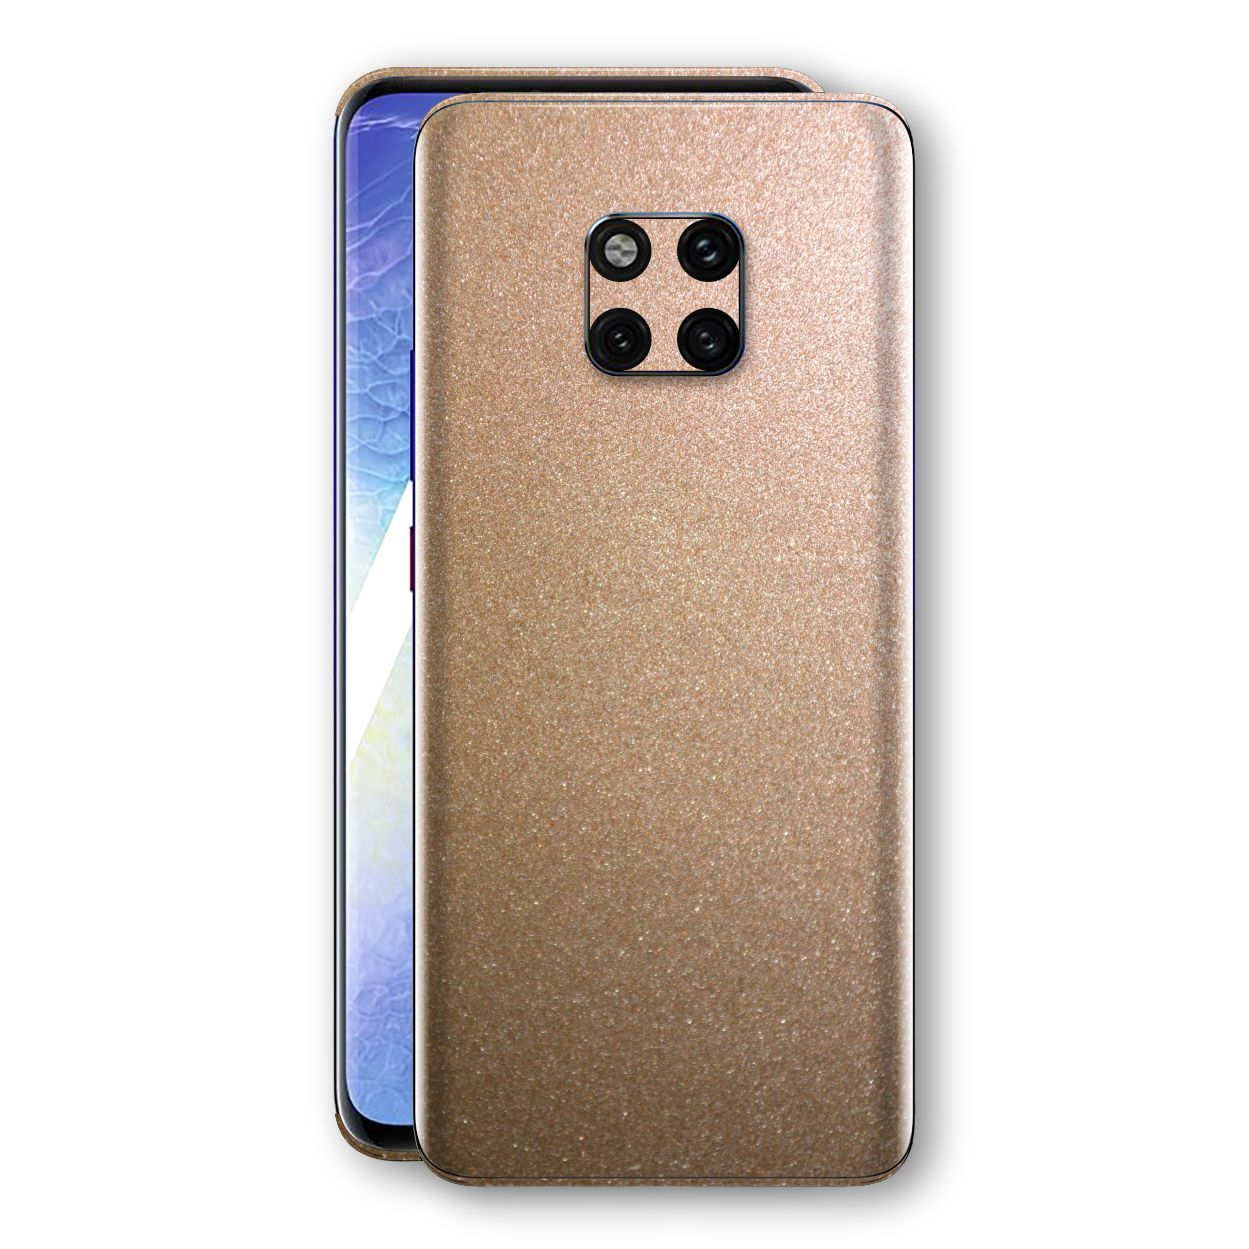 Huawei MATE 20 PRO Antique Bronze Metallic Skin, Decal, Wrap, Protector, Cover by EasySkinz | EasySkinz.com